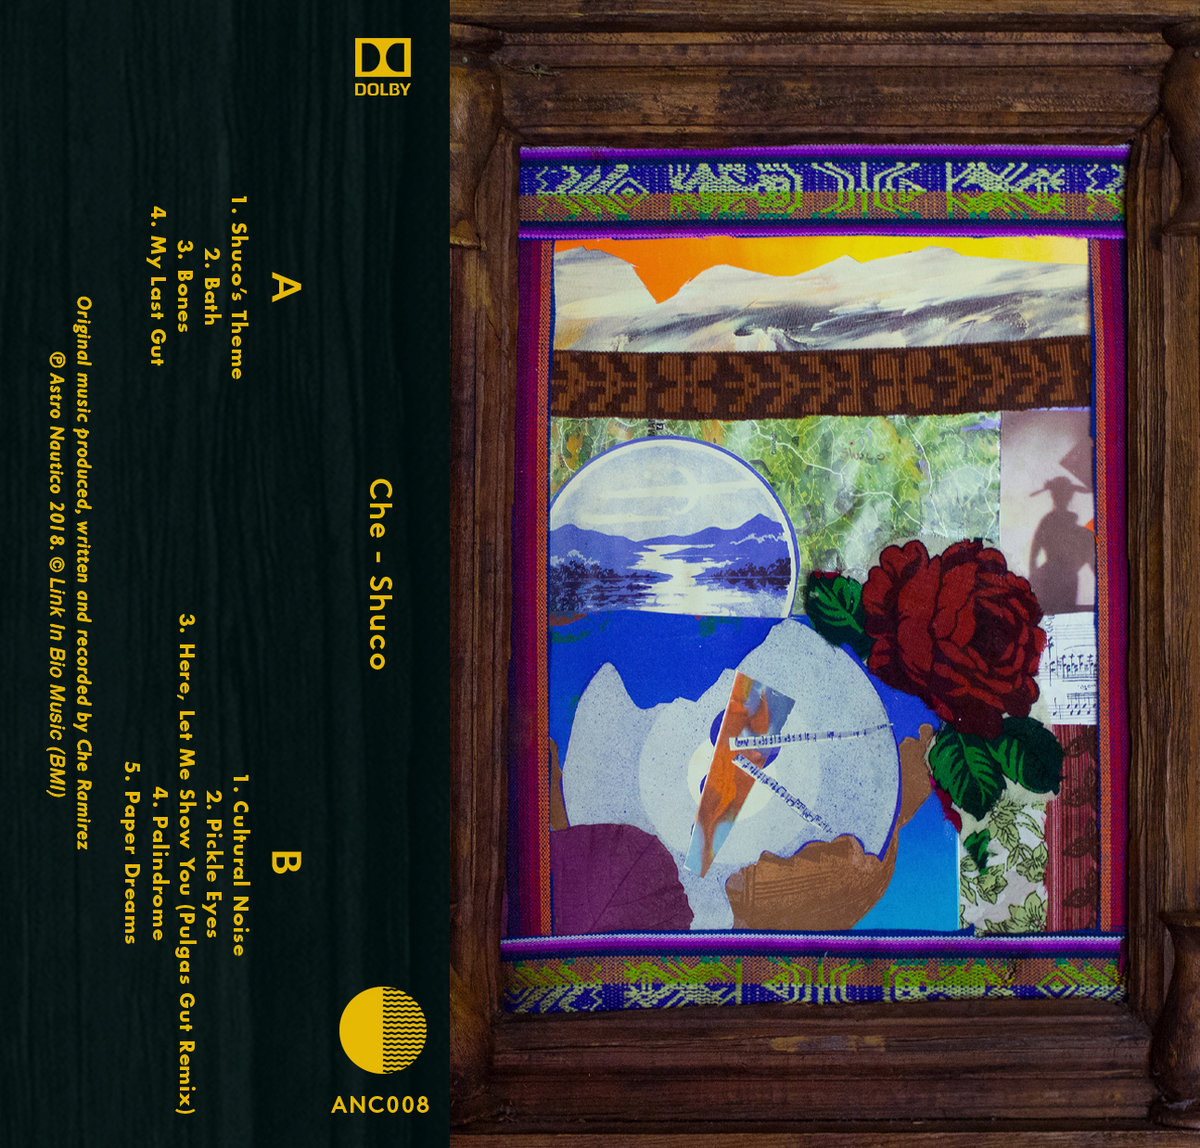 Bath astro nautico high bias cassette tape with full color artwork featuring 3 bonus tracks including a remix by pulgas includes unlimited streaming of shuco via the free malvernweather Images